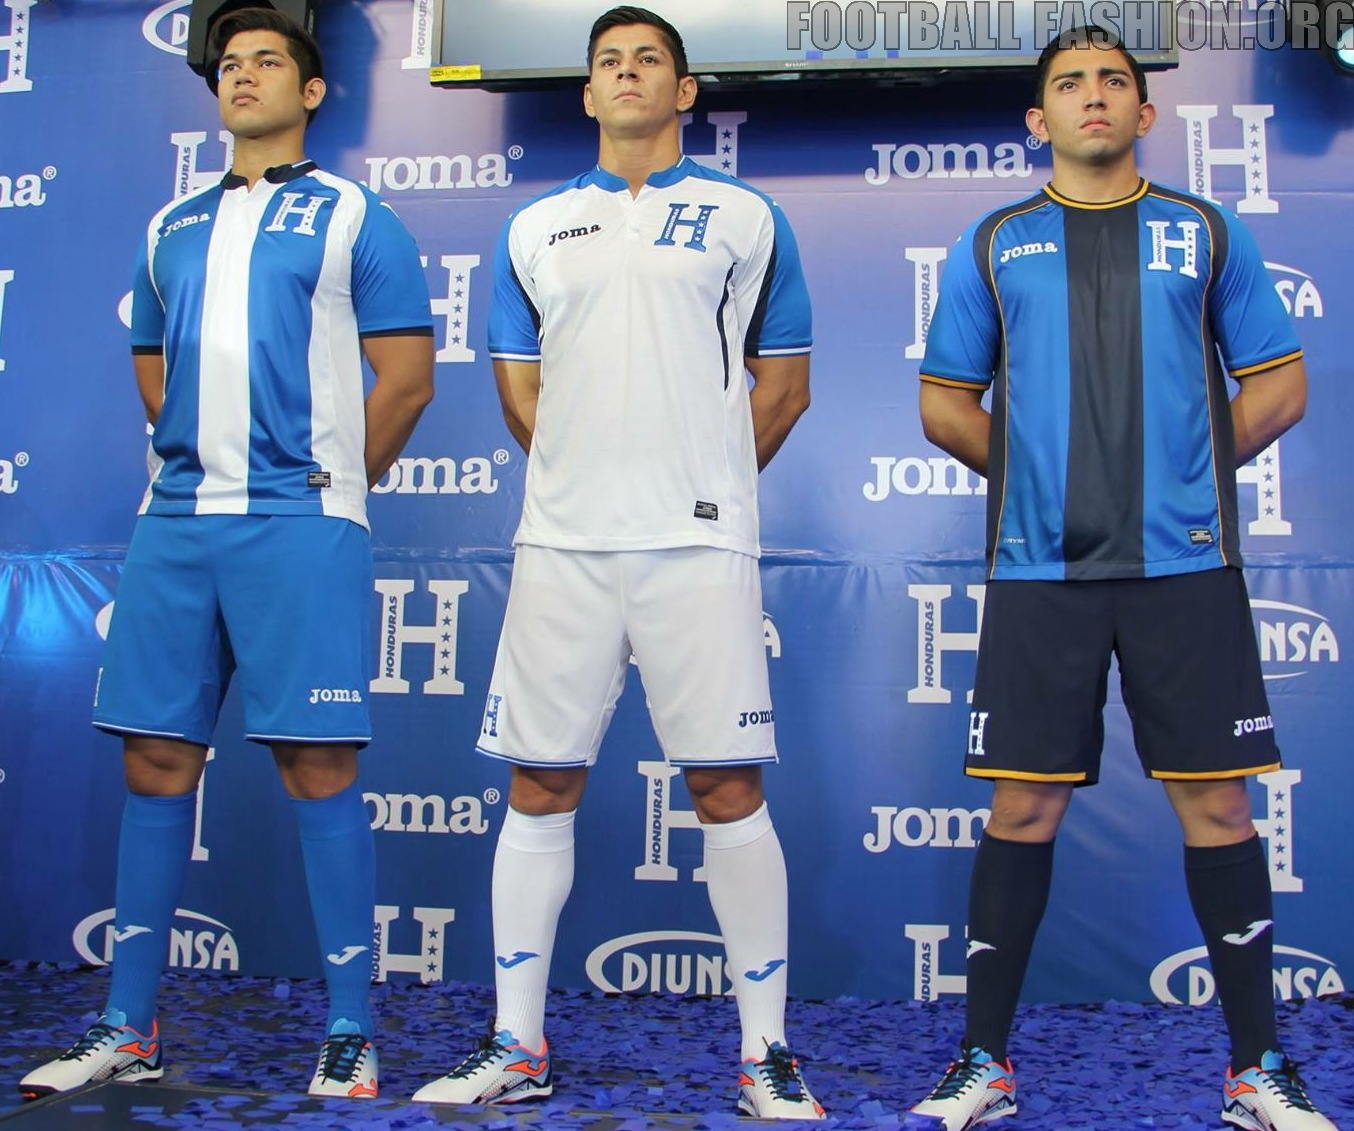 newest 1c4dd e3326 Honduras 2016/17 Joma Home, Away and Third Kits - FOOTBALL ...